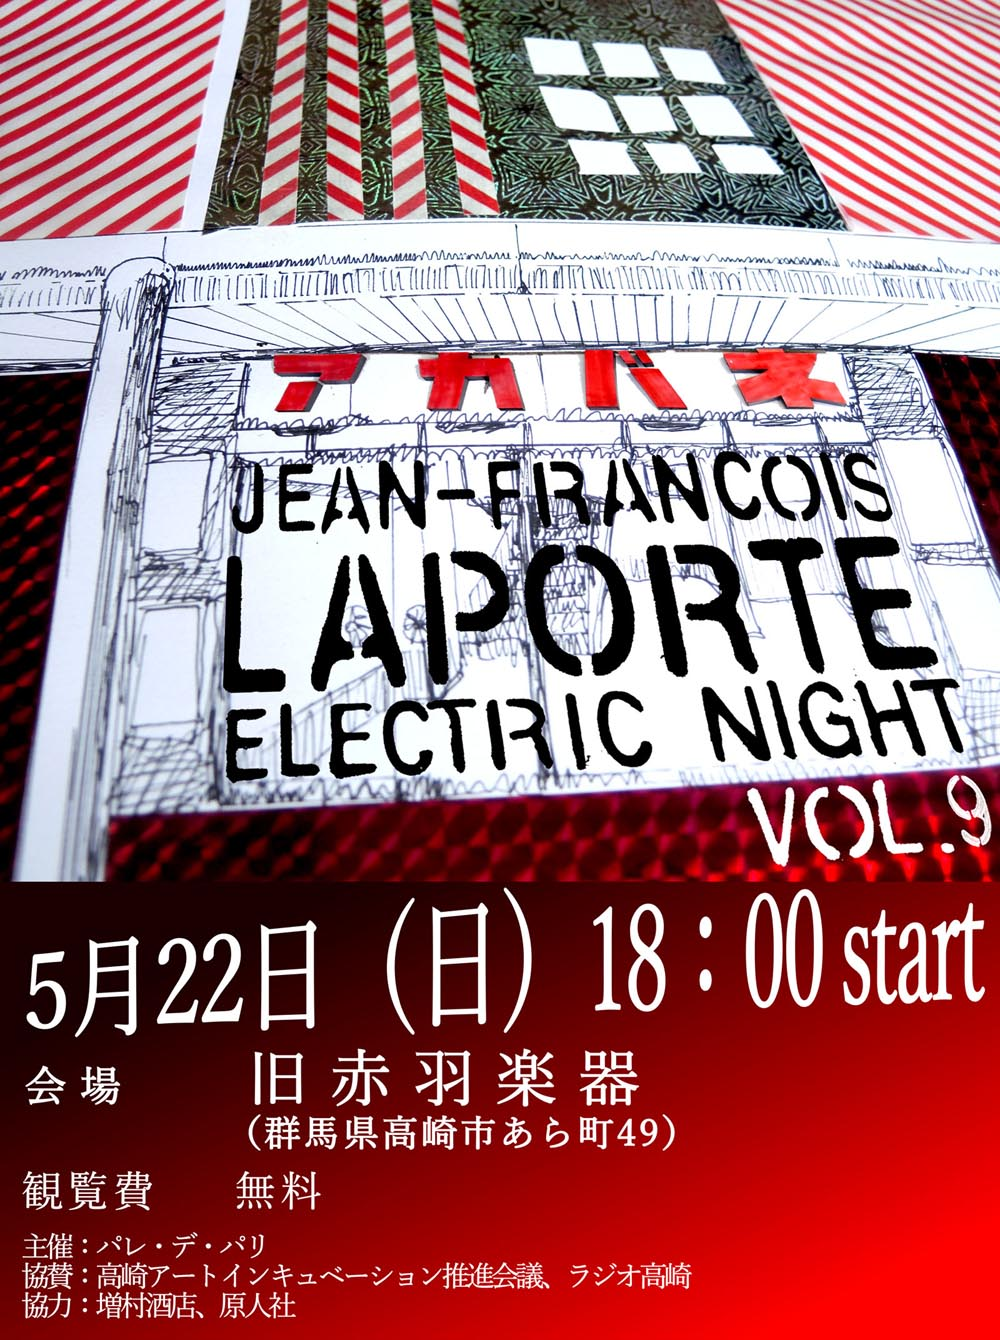 electric-night-vol9